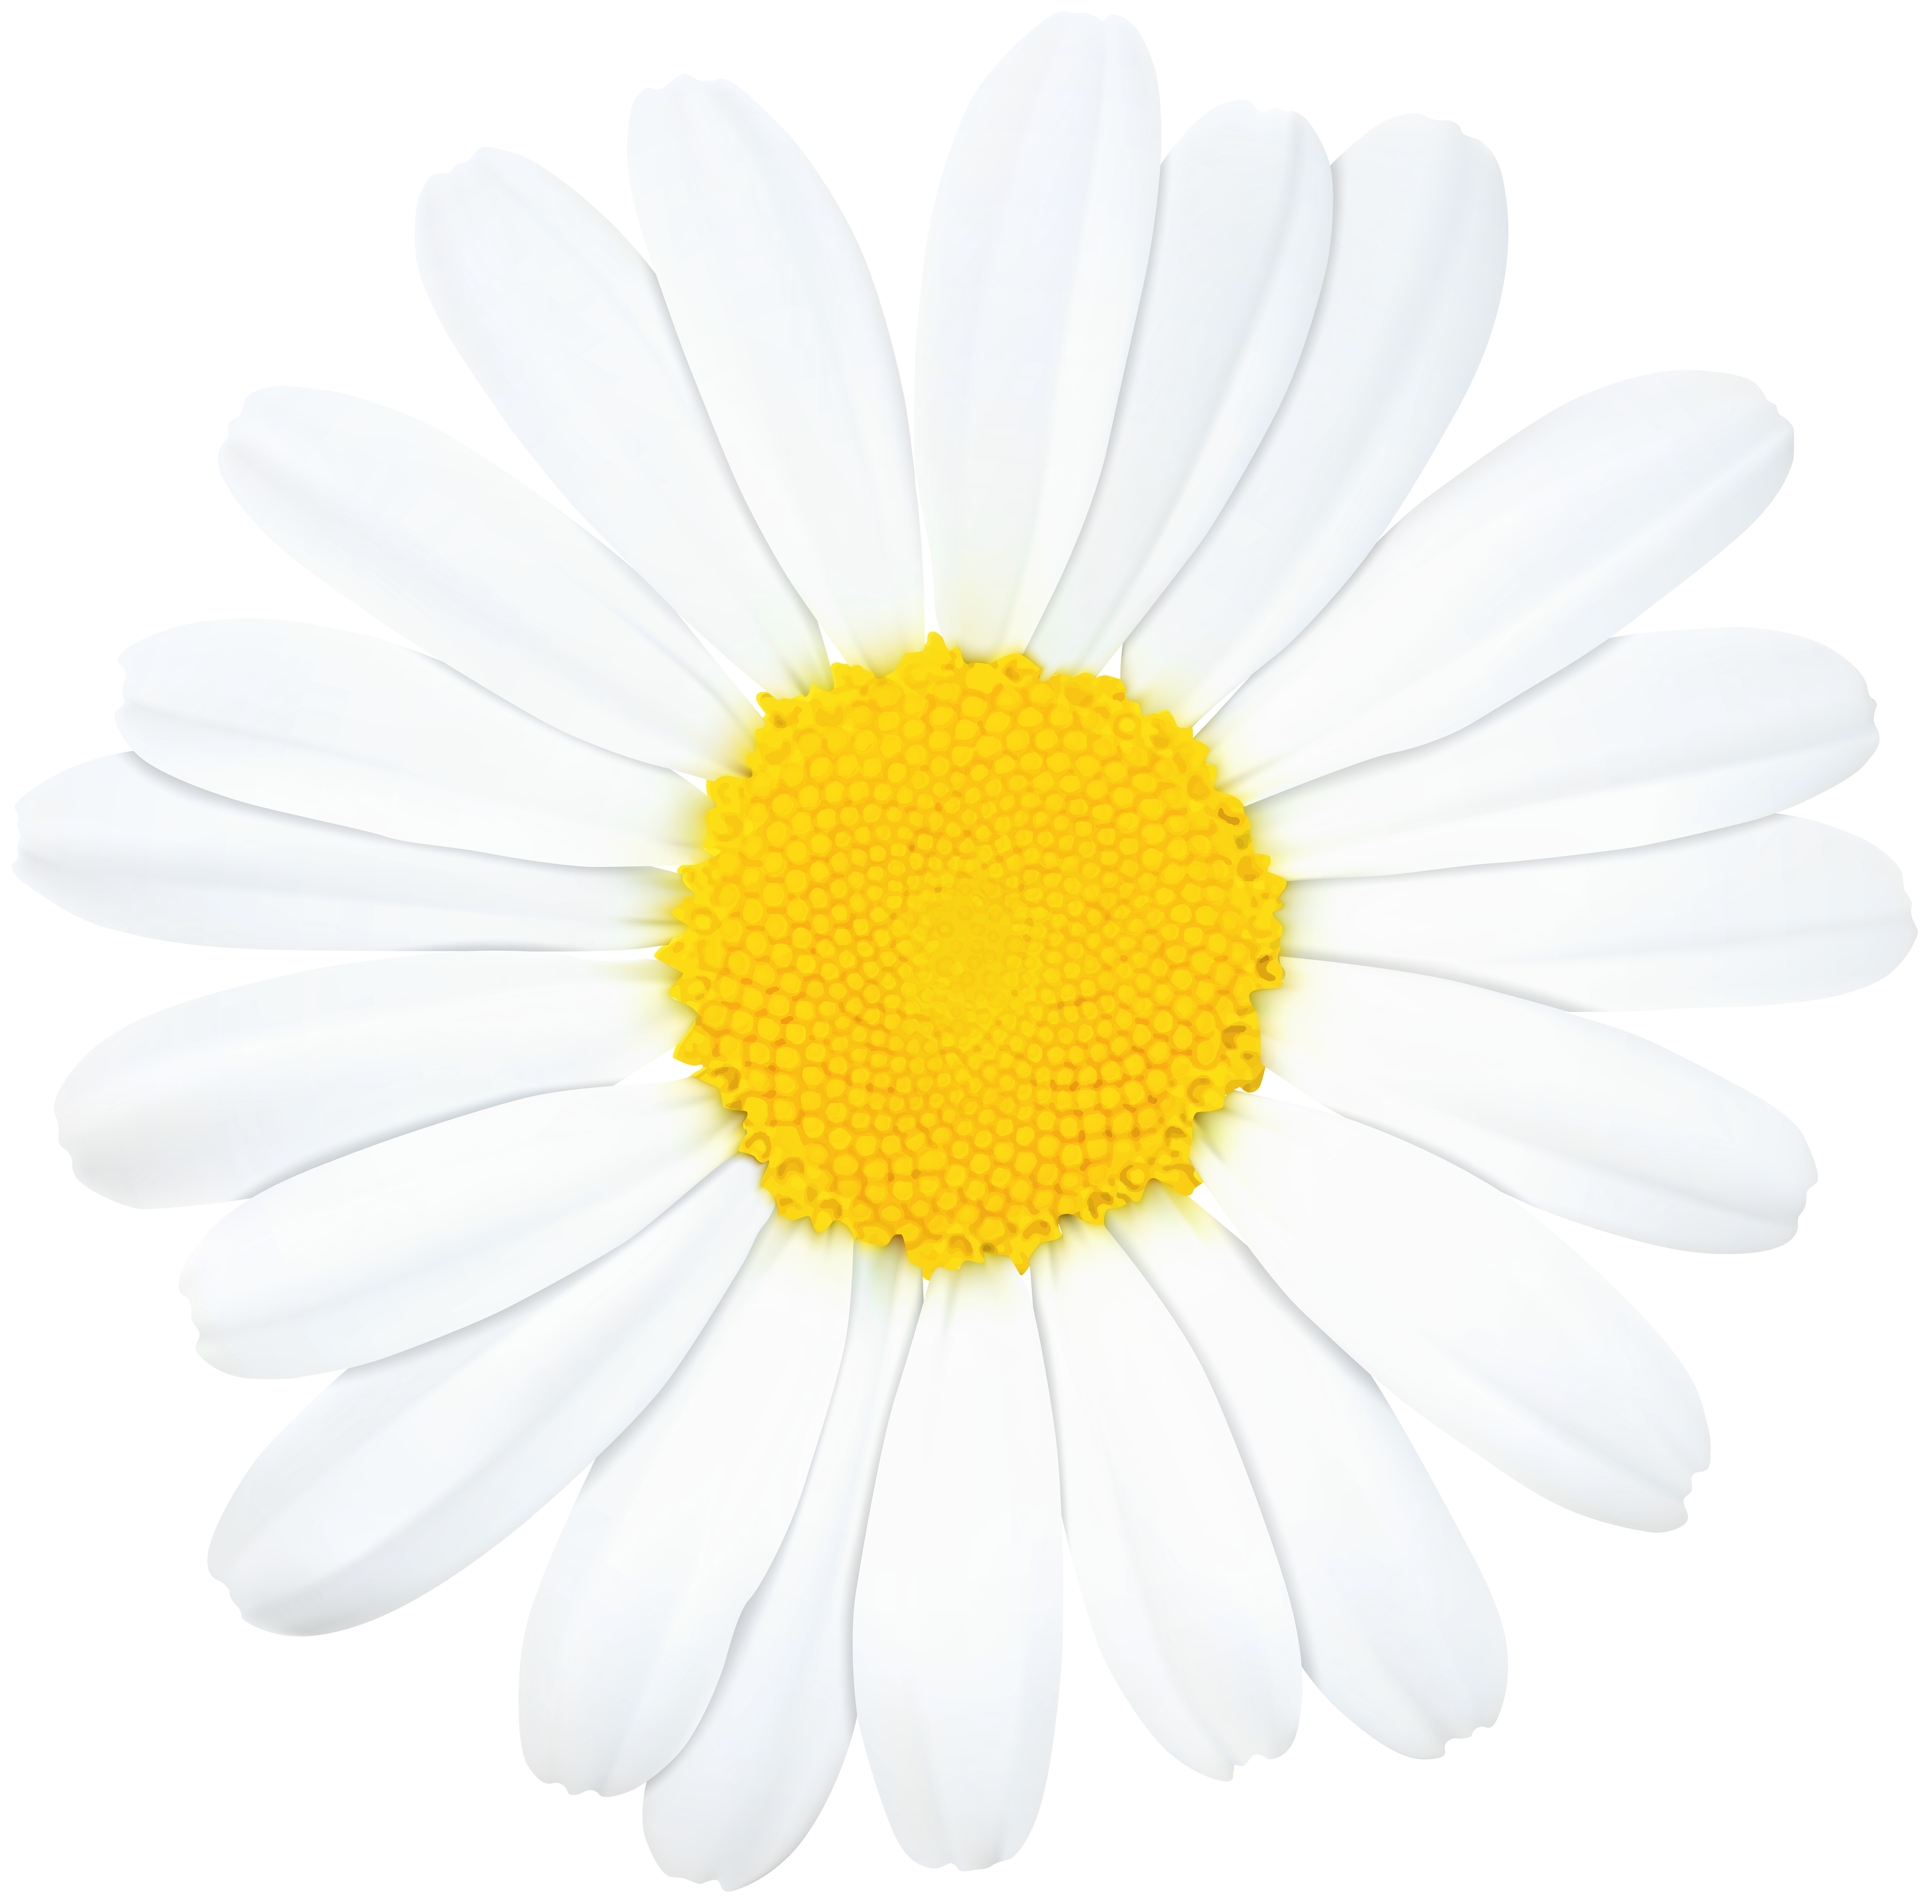 Clip art image gallery. Daisy flower png